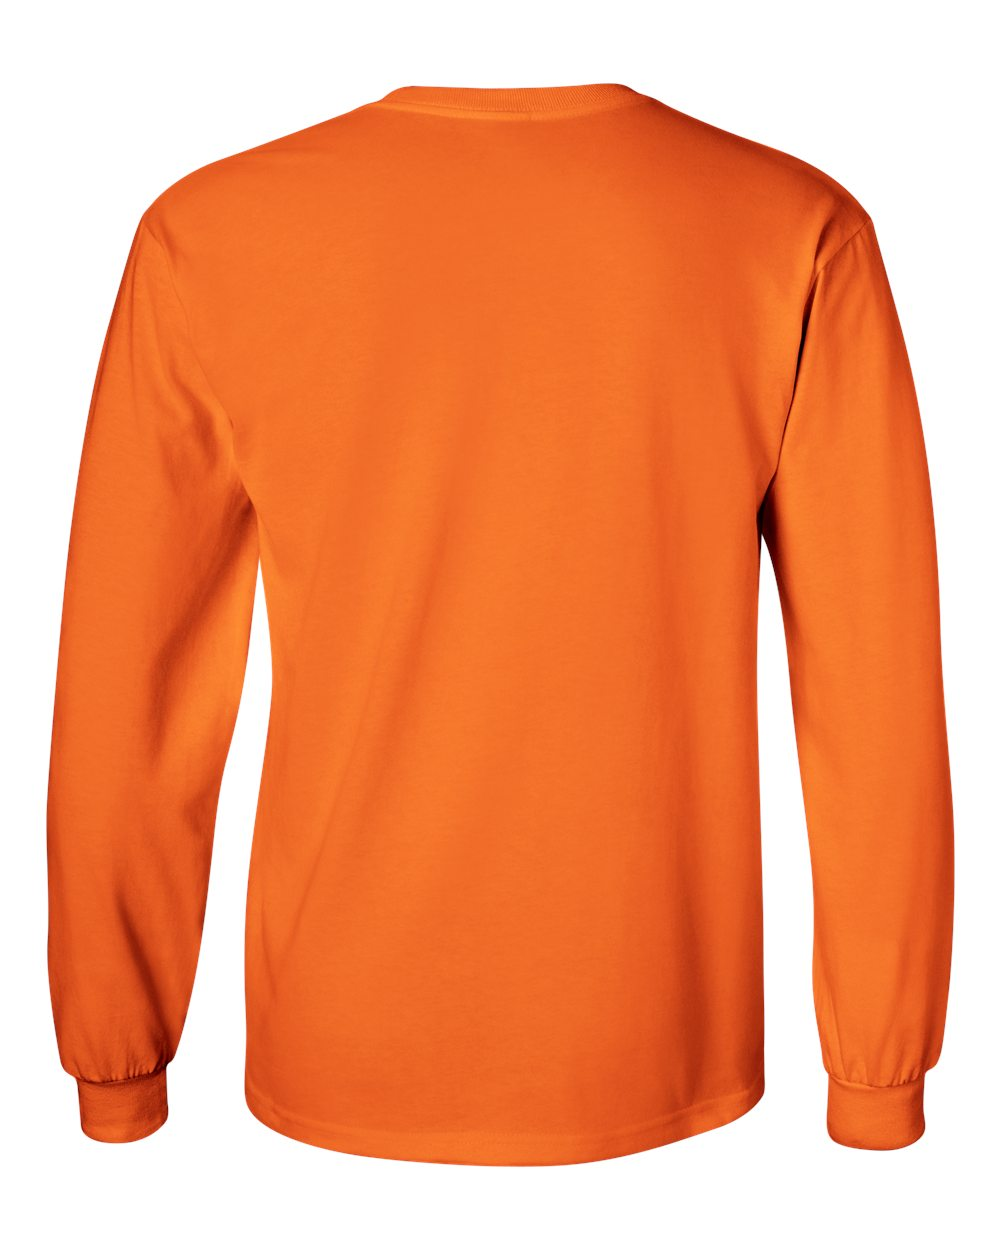 Gildan-Men-039-s-Ultra-Cotton-6-oz-Long-Sleeve-T-Shirt-G240-S-5XL thumbnail 93